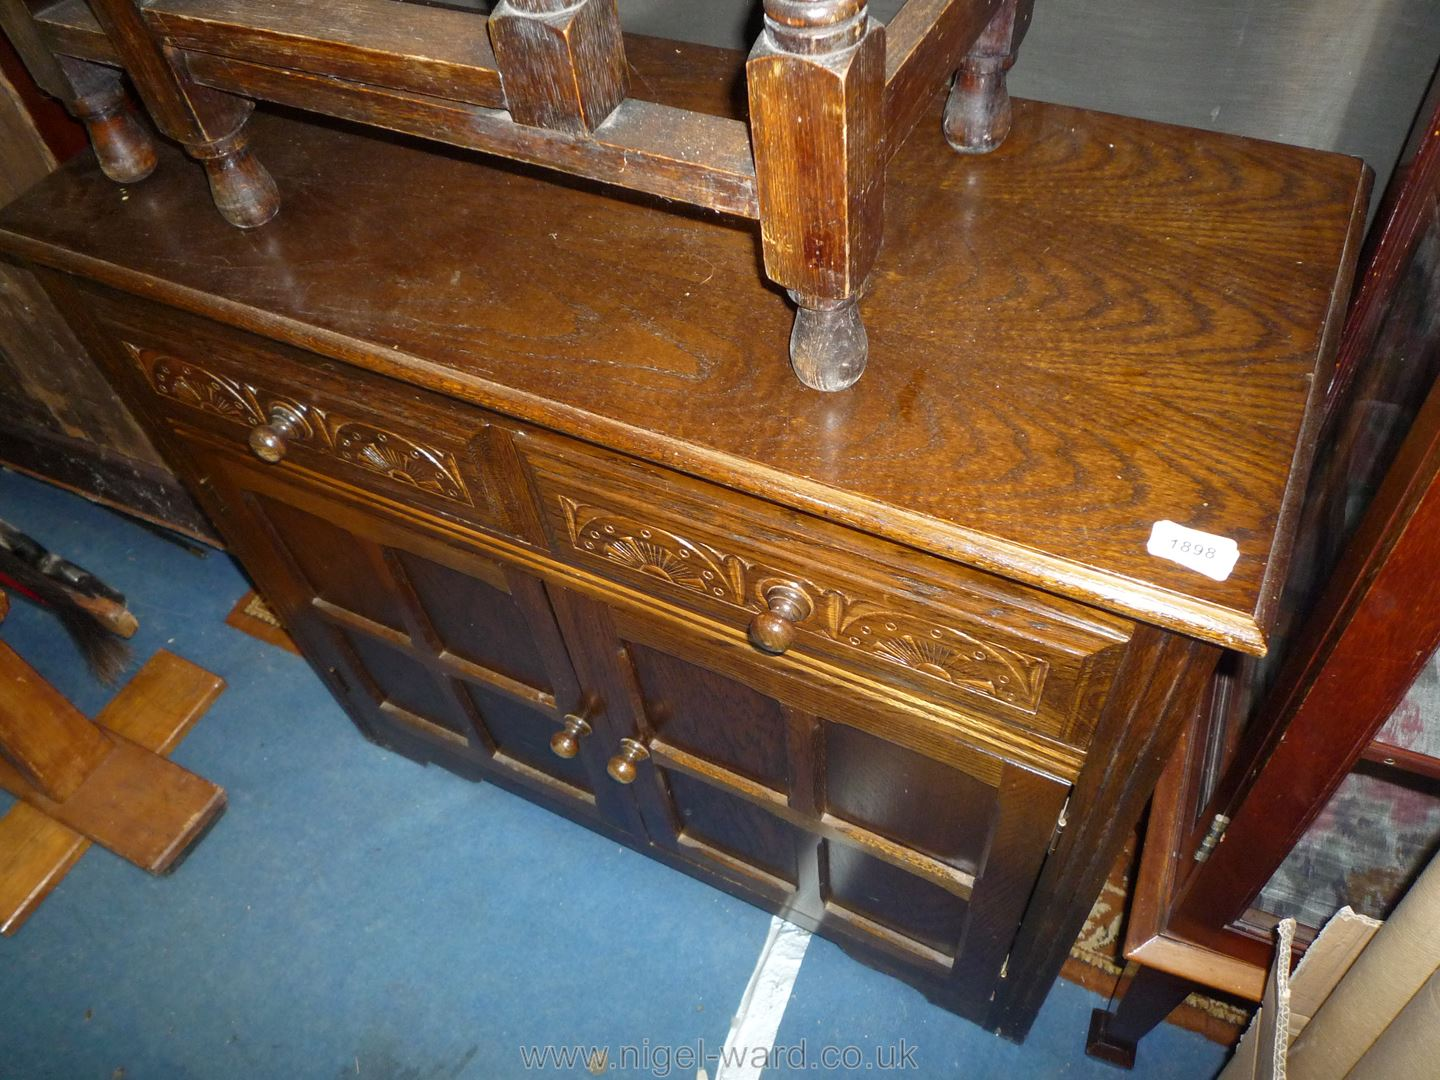 A compact Old Charm/Priory style dark Oak Sideboard of compact size having two frieze drawers and a - Image 2 of 2